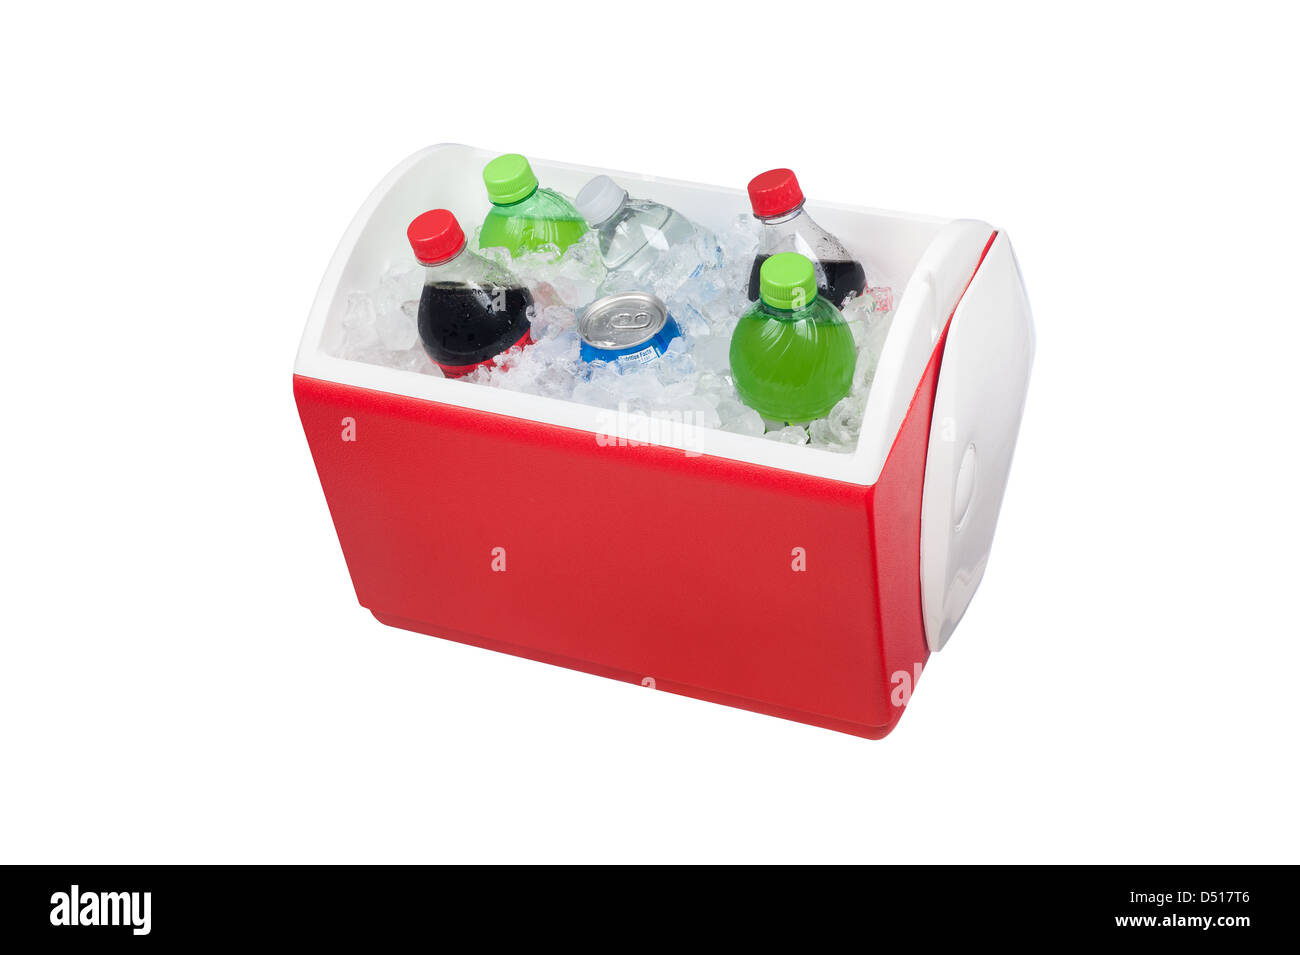 An isolated ice chest cooler filled with ice and soft drinks such as water and soda. - Stock Image